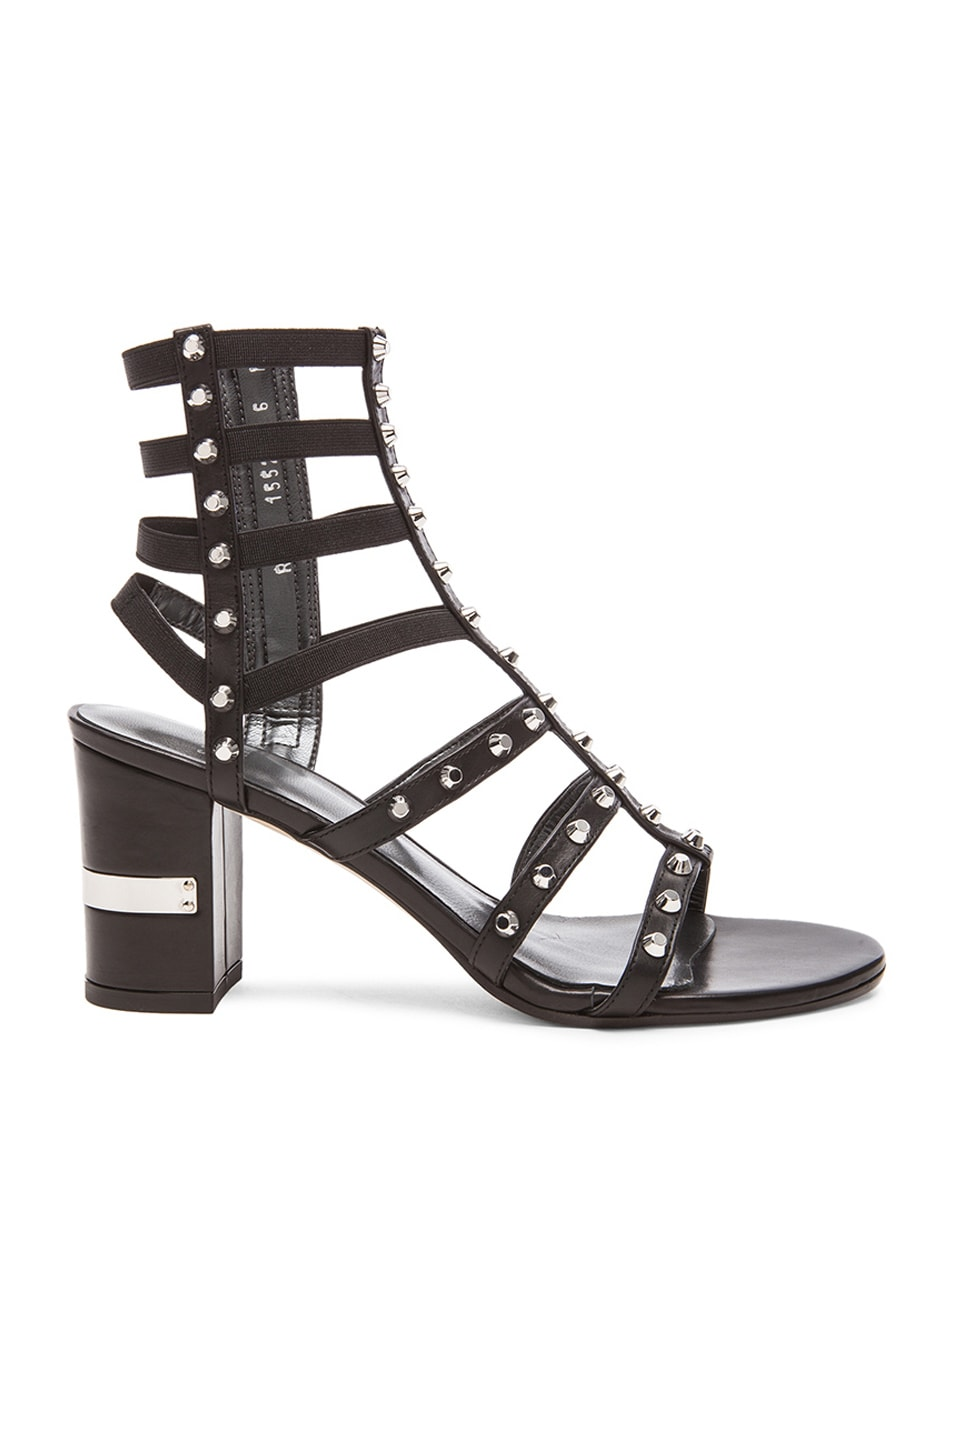 Stuart Weitzman studded strappy sandals cheap sale high quality 2015 sale online the best store to get free shipping best store to get jFJQ6r